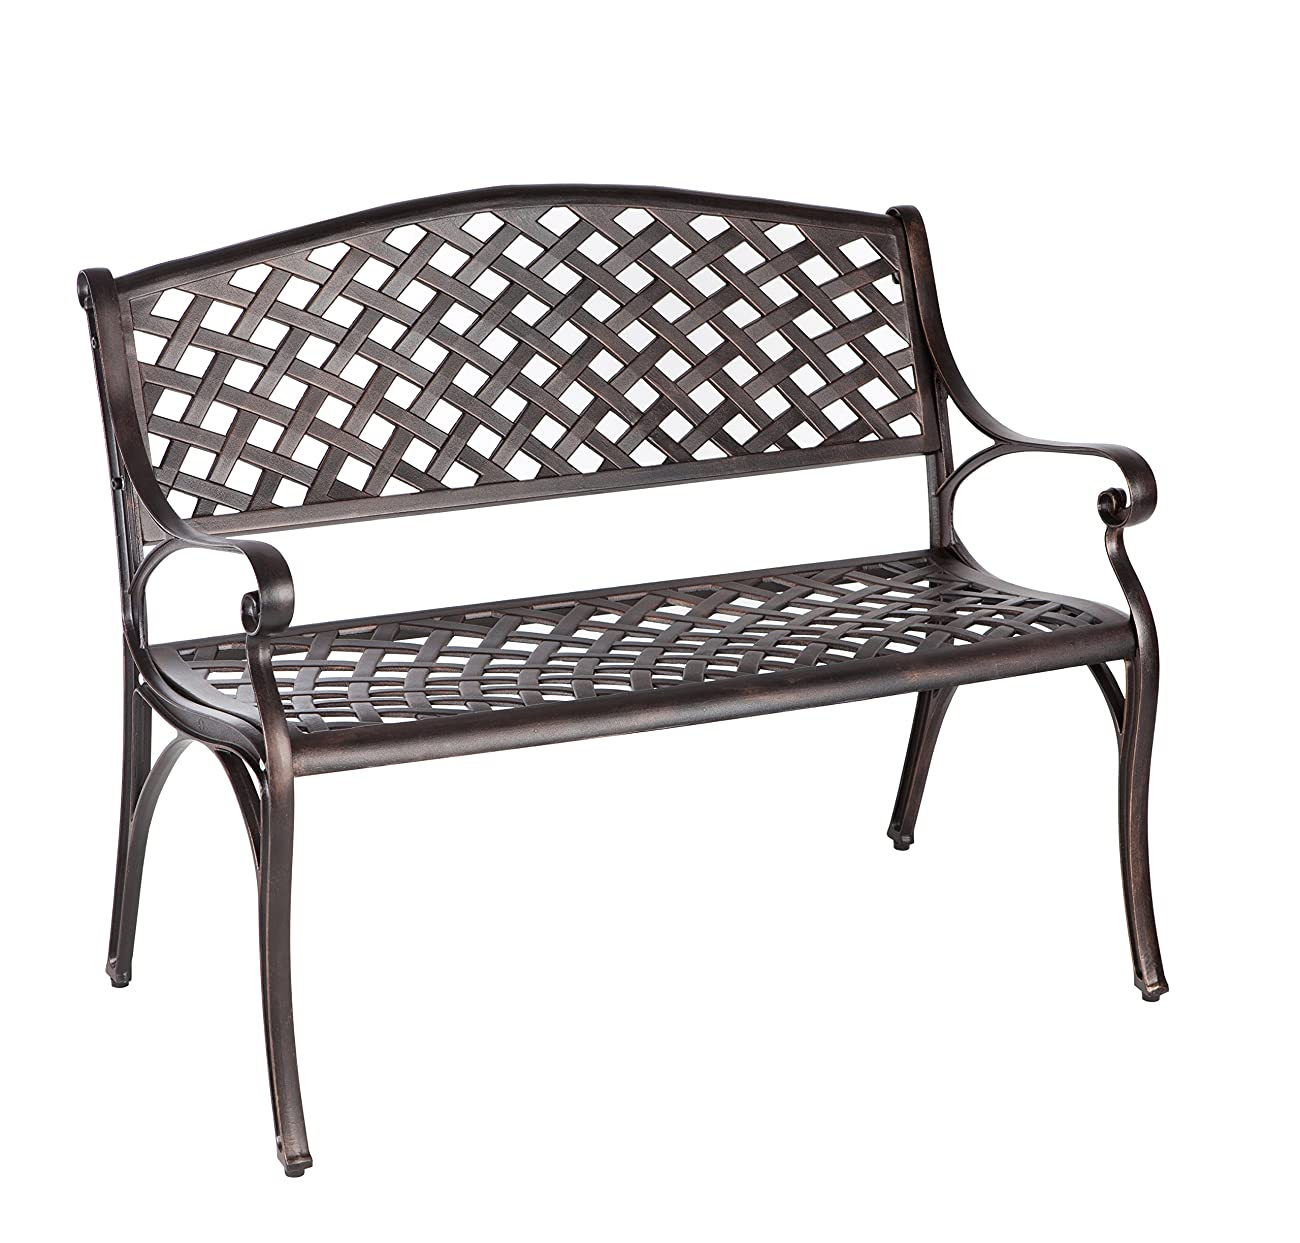 Patio Sense Antique Bronze Cast Aluminum Patio Bench 0